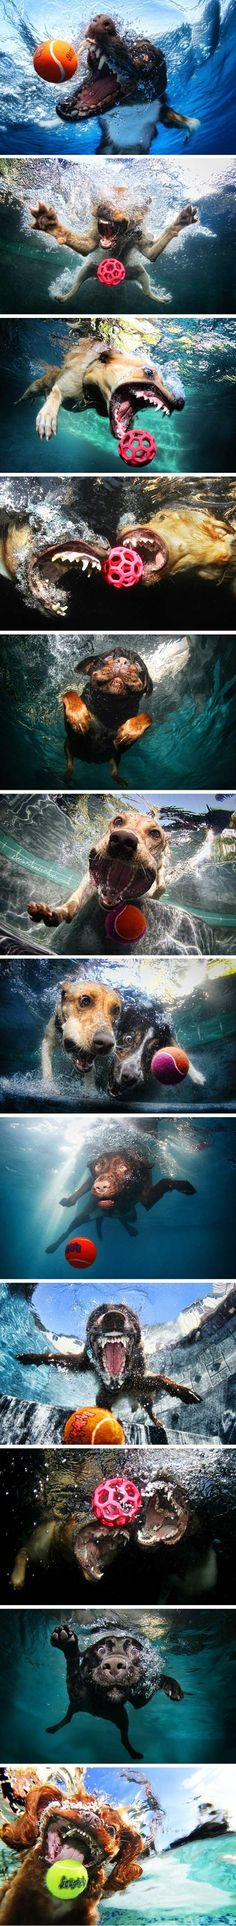 Seth Casteel's photos of dogs diving into swimming pools in hot pursuit of neon tennis balls.